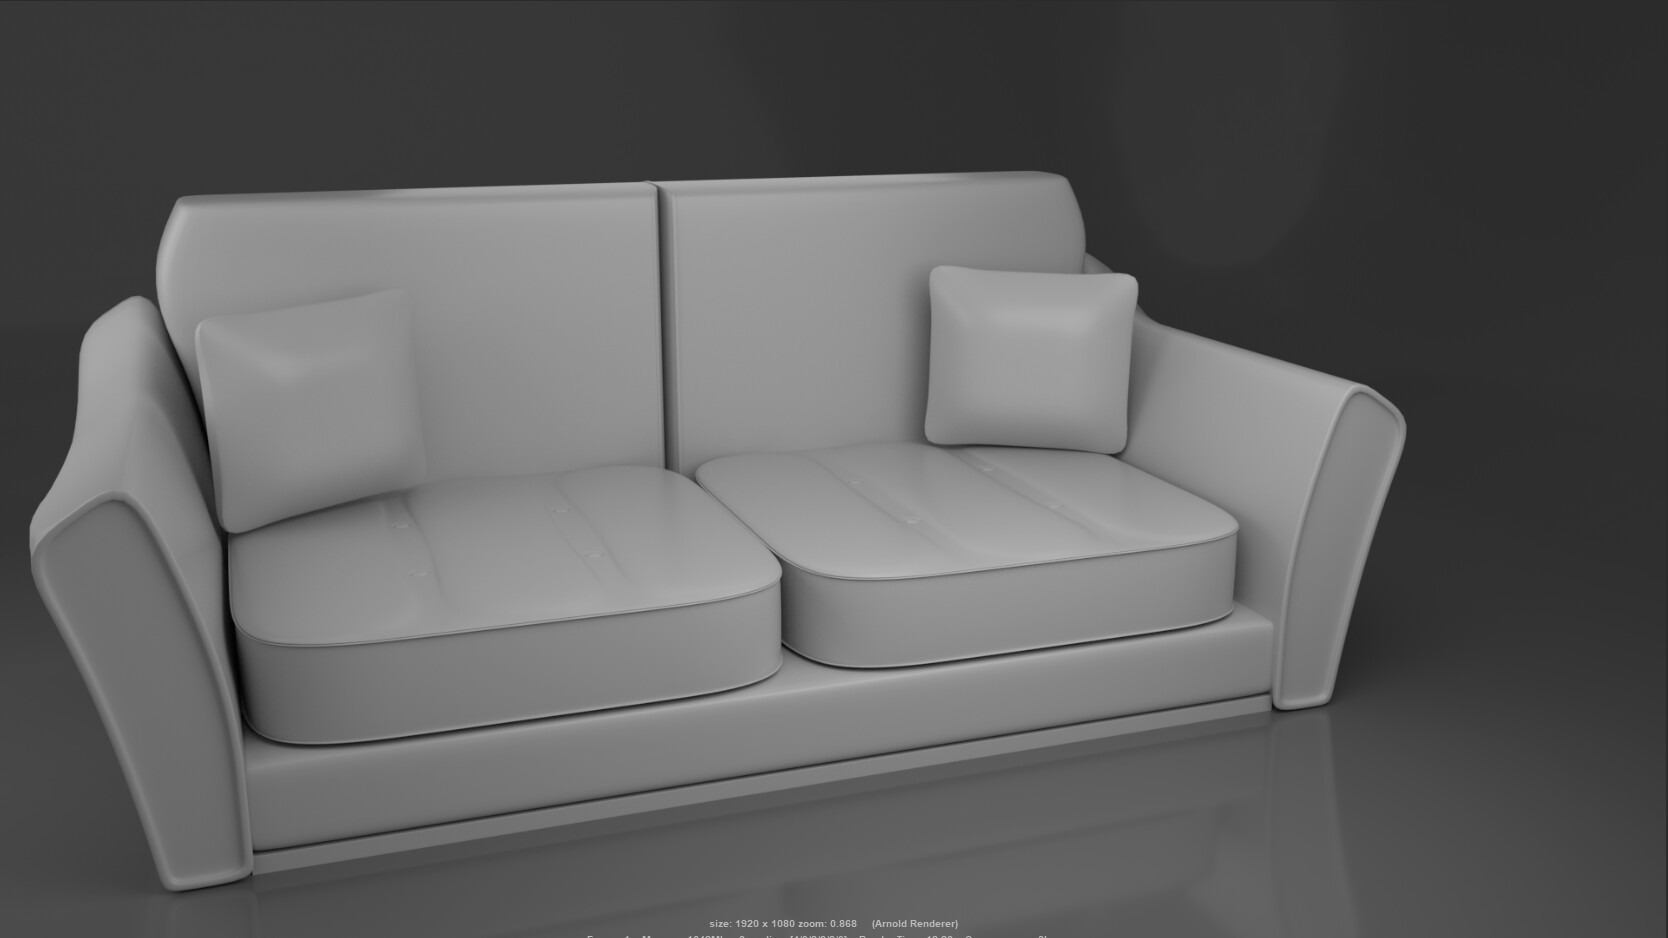 Magnificent Artstation Couch Project Ben Hastings Andrewgaddart Wooden Chair Designs For Living Room Andrewgaddartcom